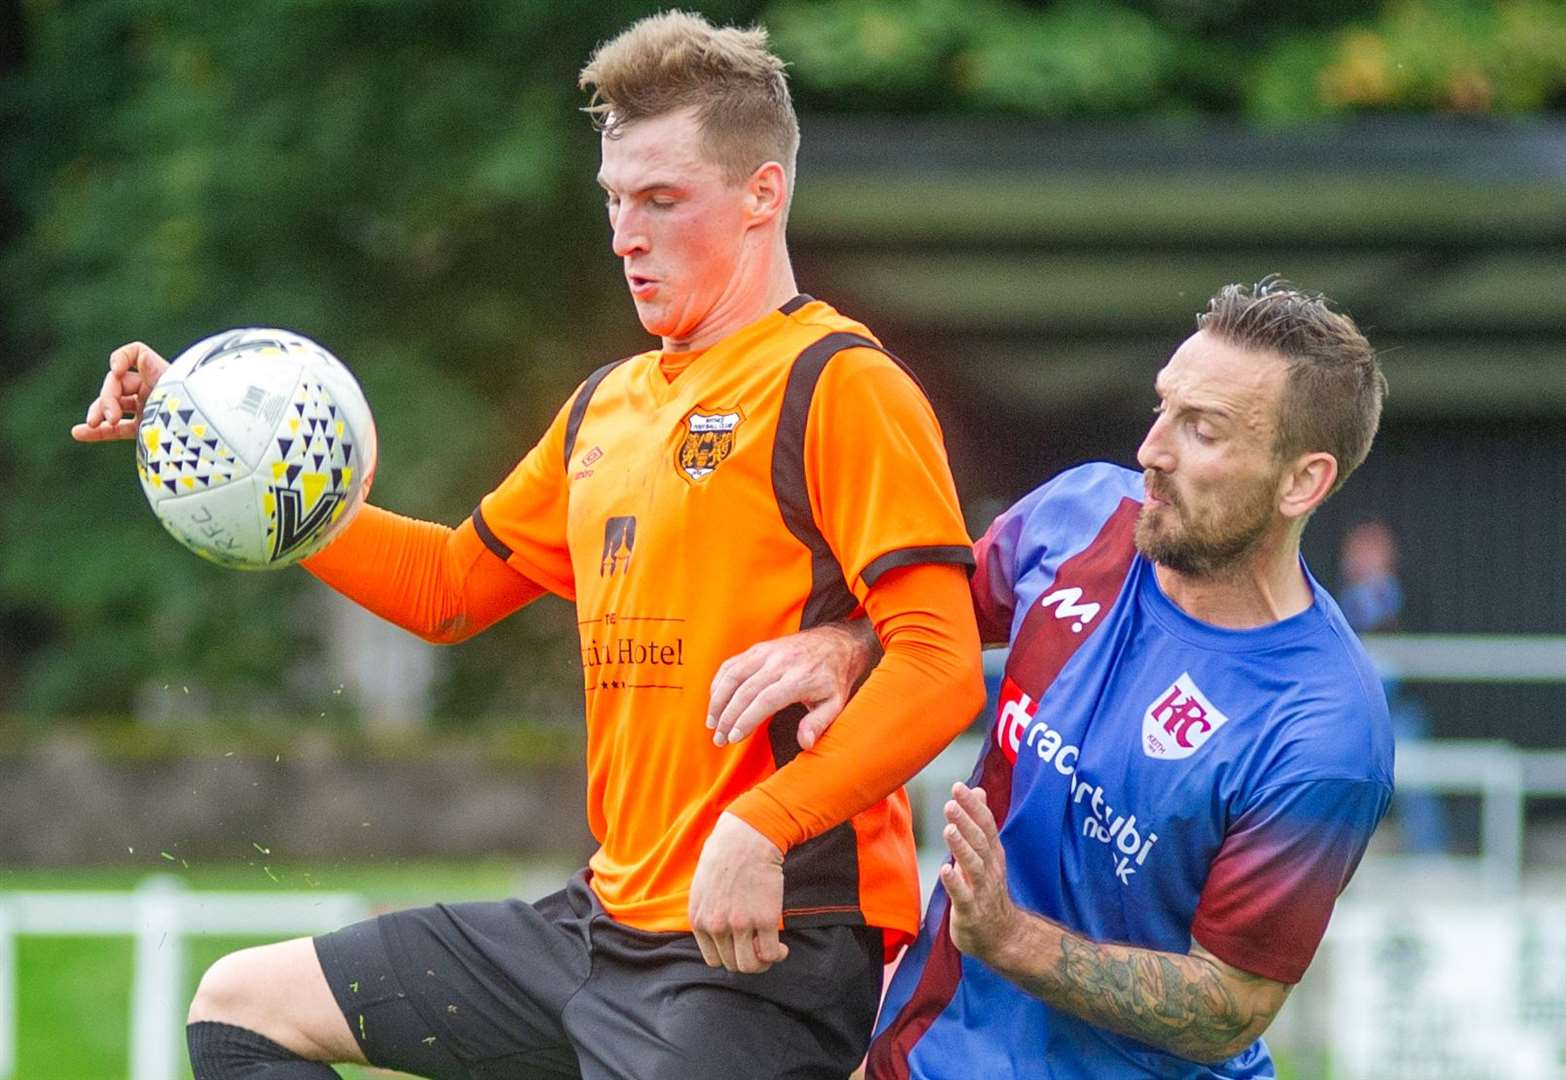 Saturday's Highland League preview